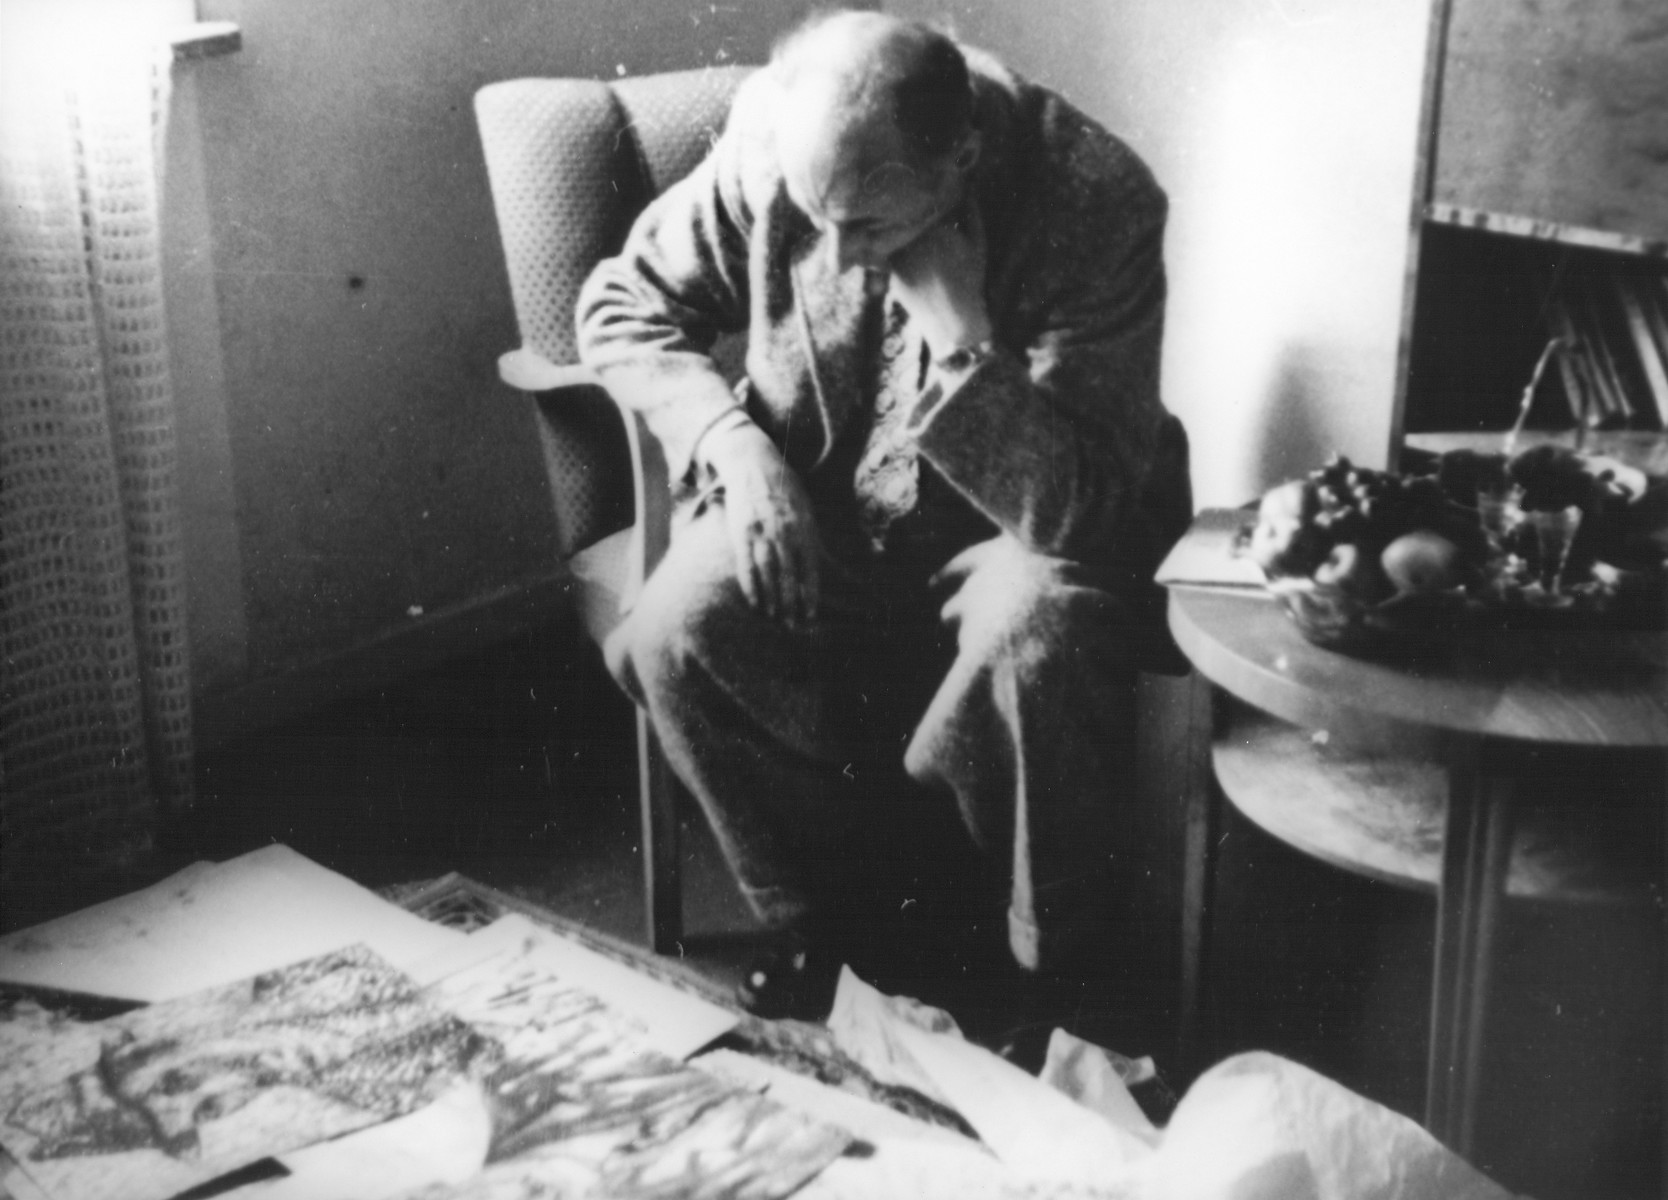 In the apartment of Nachman Zonabend, Lodz ghetto artist Josef Kowner looks at a collection of forty-five of his paintings that were rescued by Zonabend from the ghetto.   Josef Kowner died in Sweden in 1968.